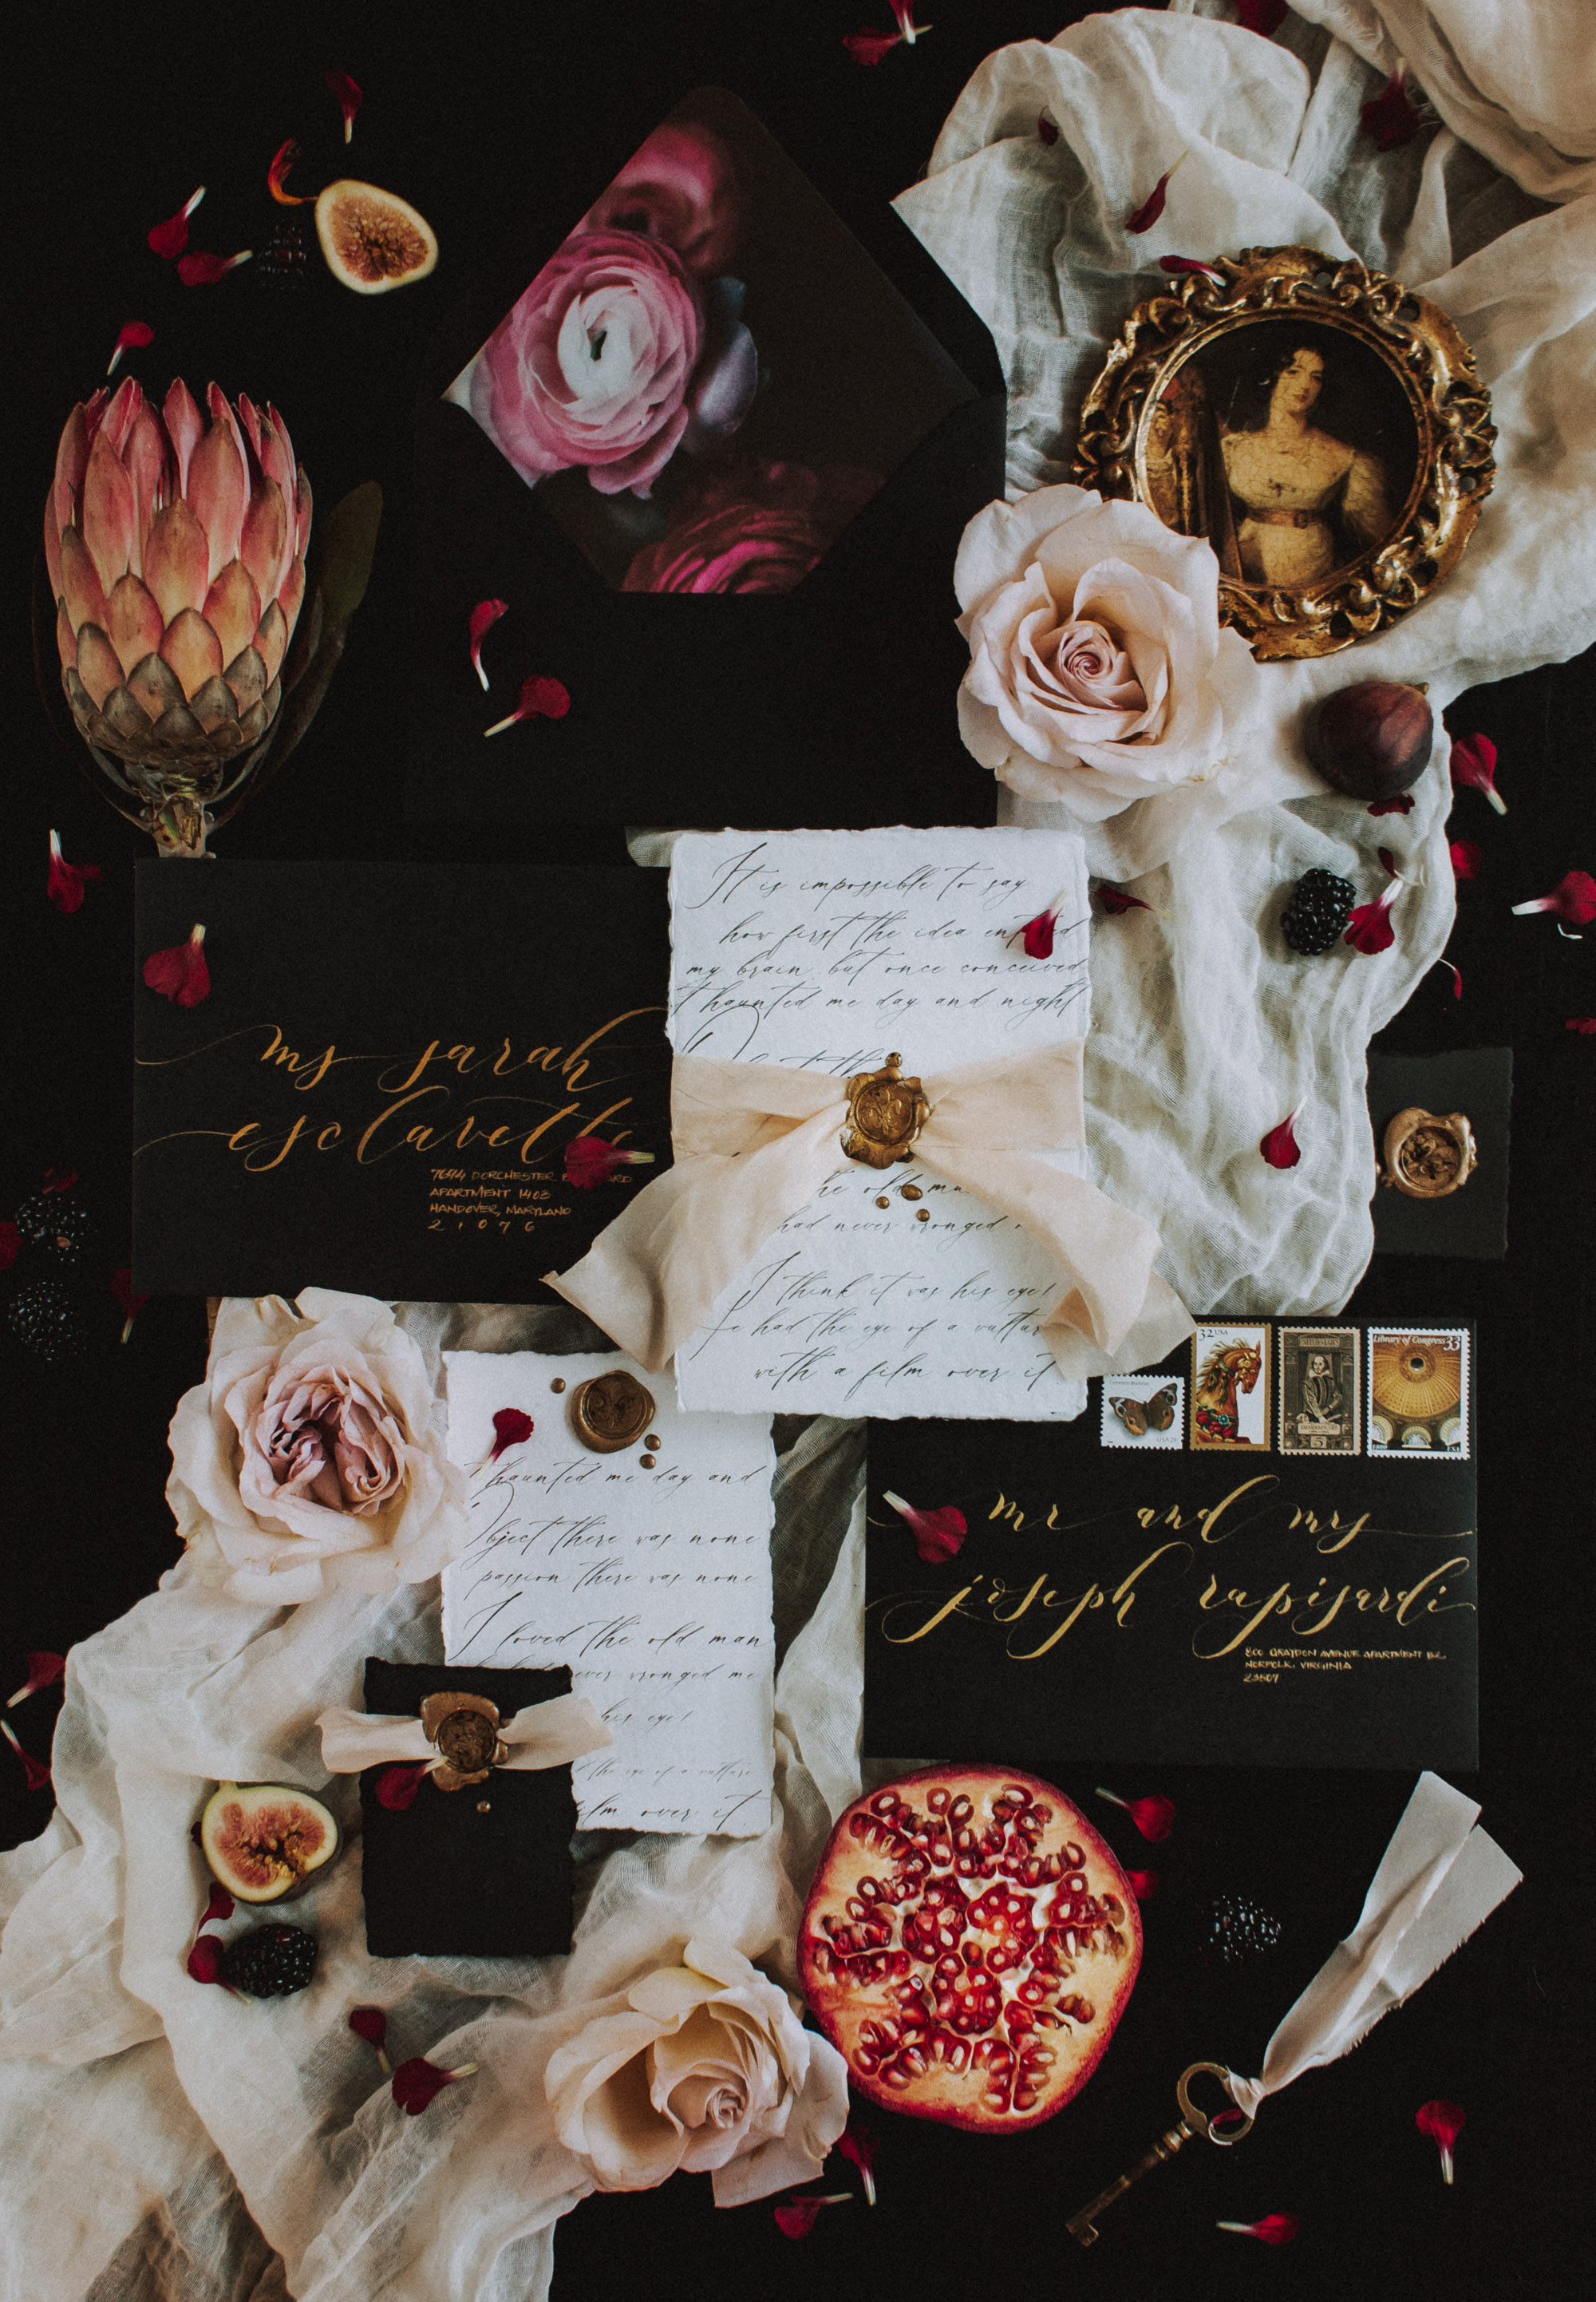 Romantic Black, White, and Gold Calligraphy Stationery Inspiration by Lustre Theory with Seniman Calligraphy on Fringe & Rose Handmade Paper